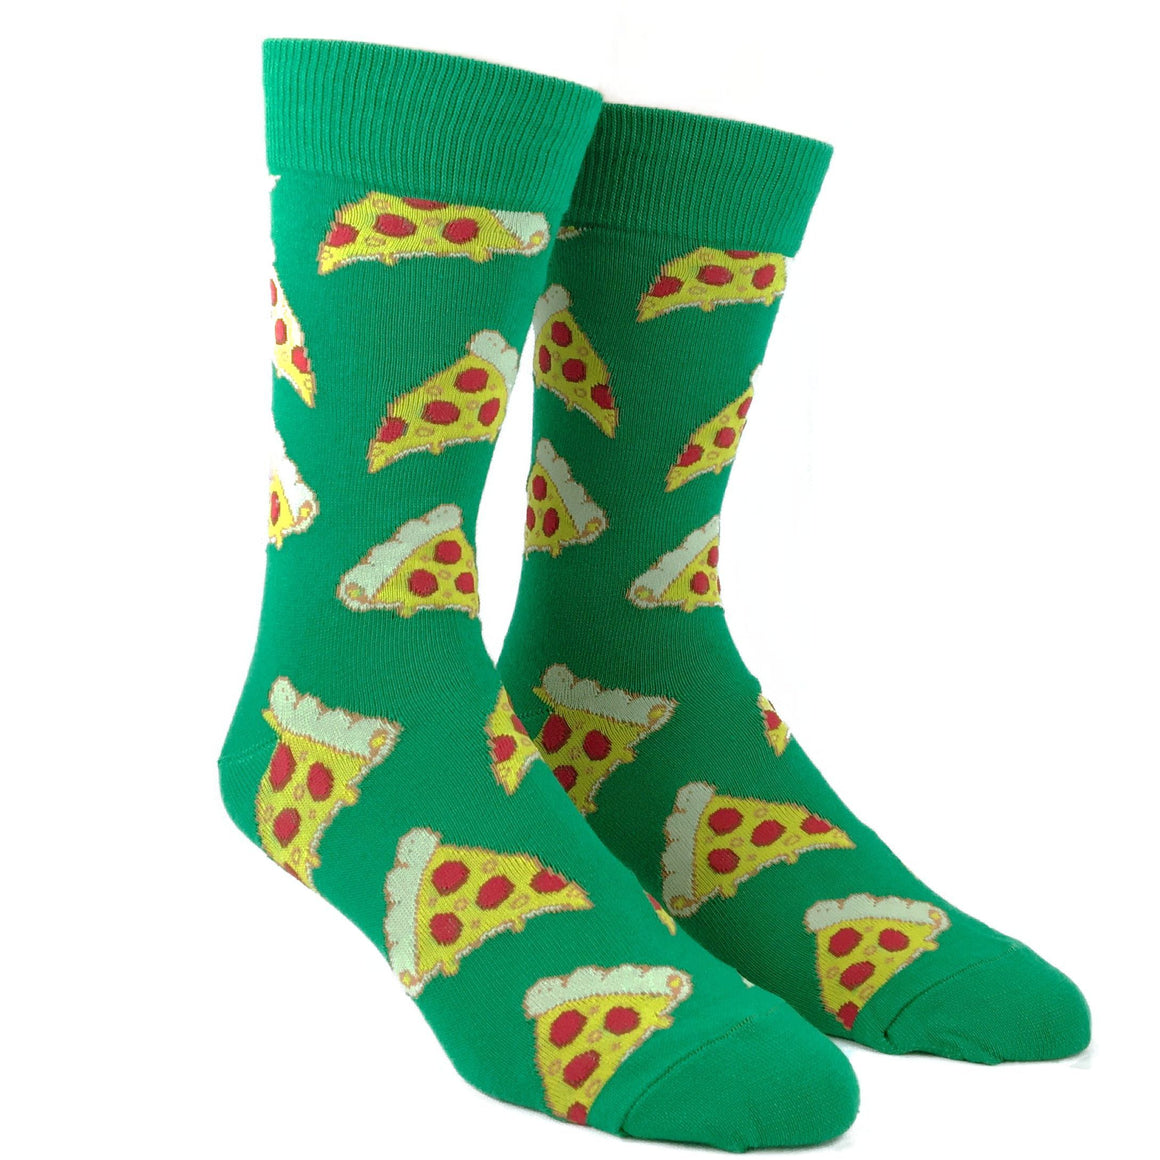 Socks - Pizza Slice Socks - Green